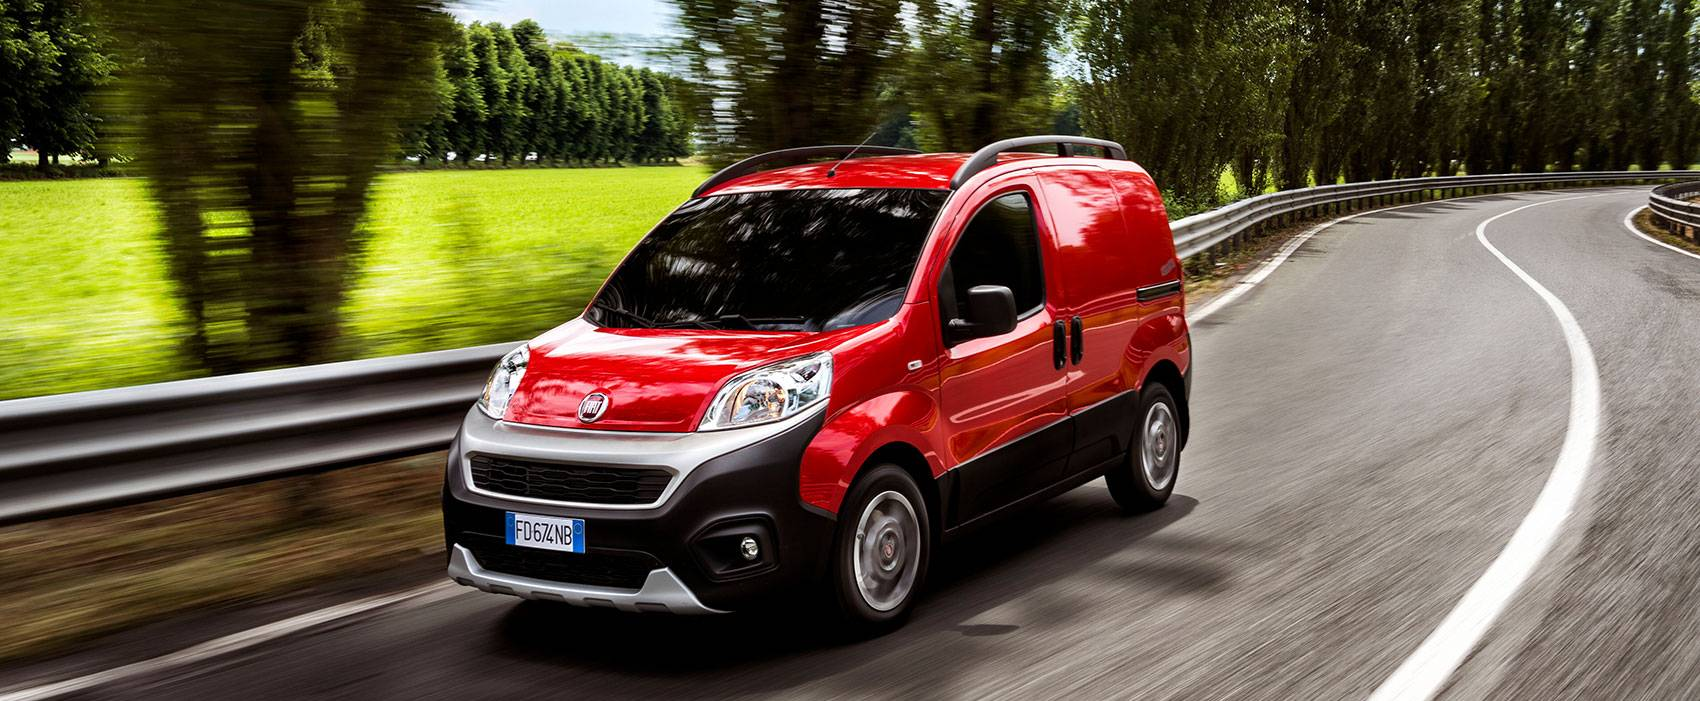 Fiat Fiorino Adventure Edition